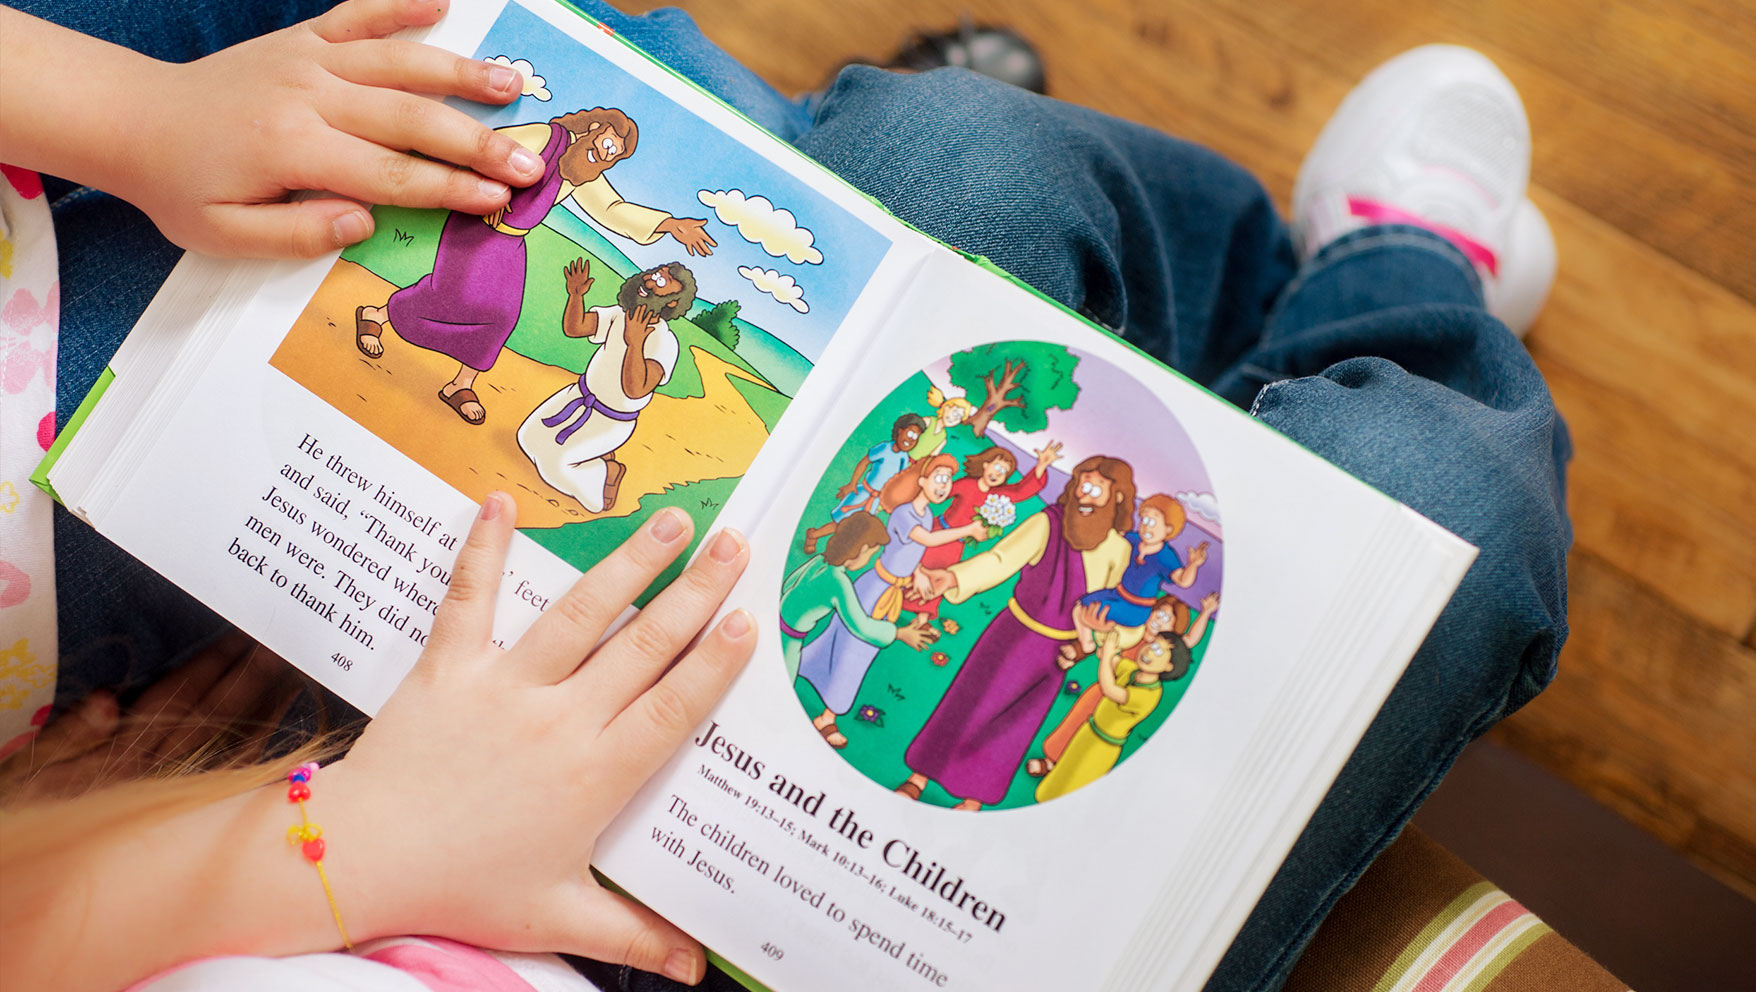 3 Bible Stories to Teach Your Kids about Integrity